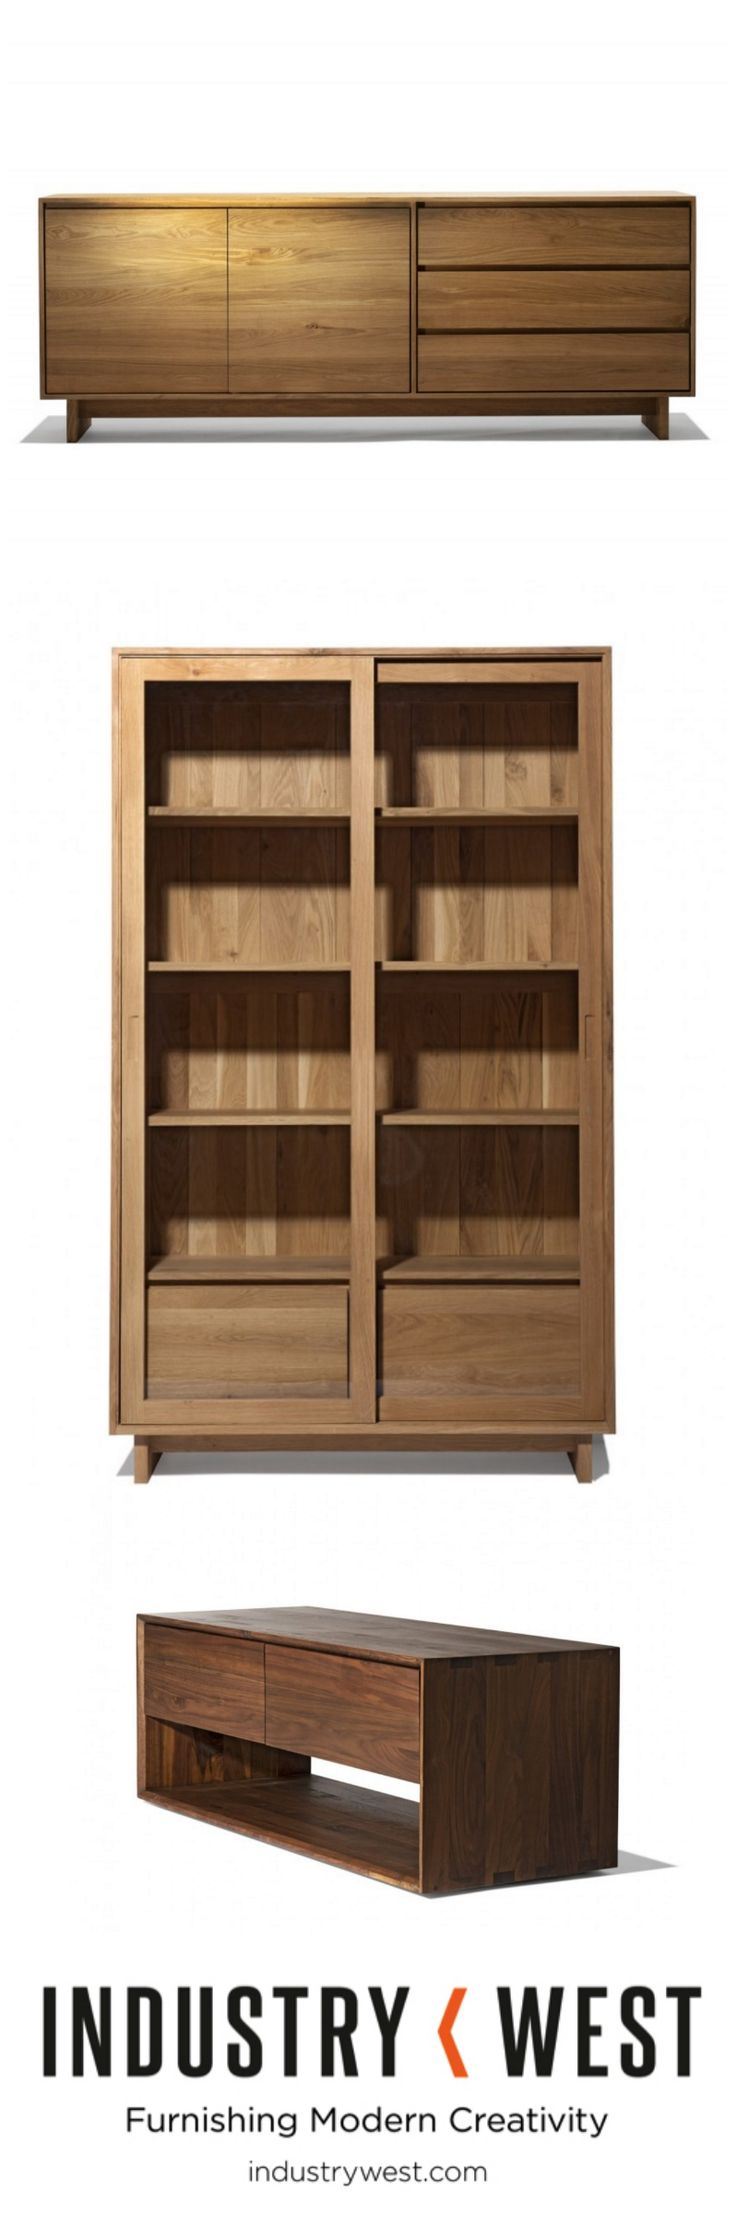 Sideboards, hutches, consoles and other storage options from Industry West.